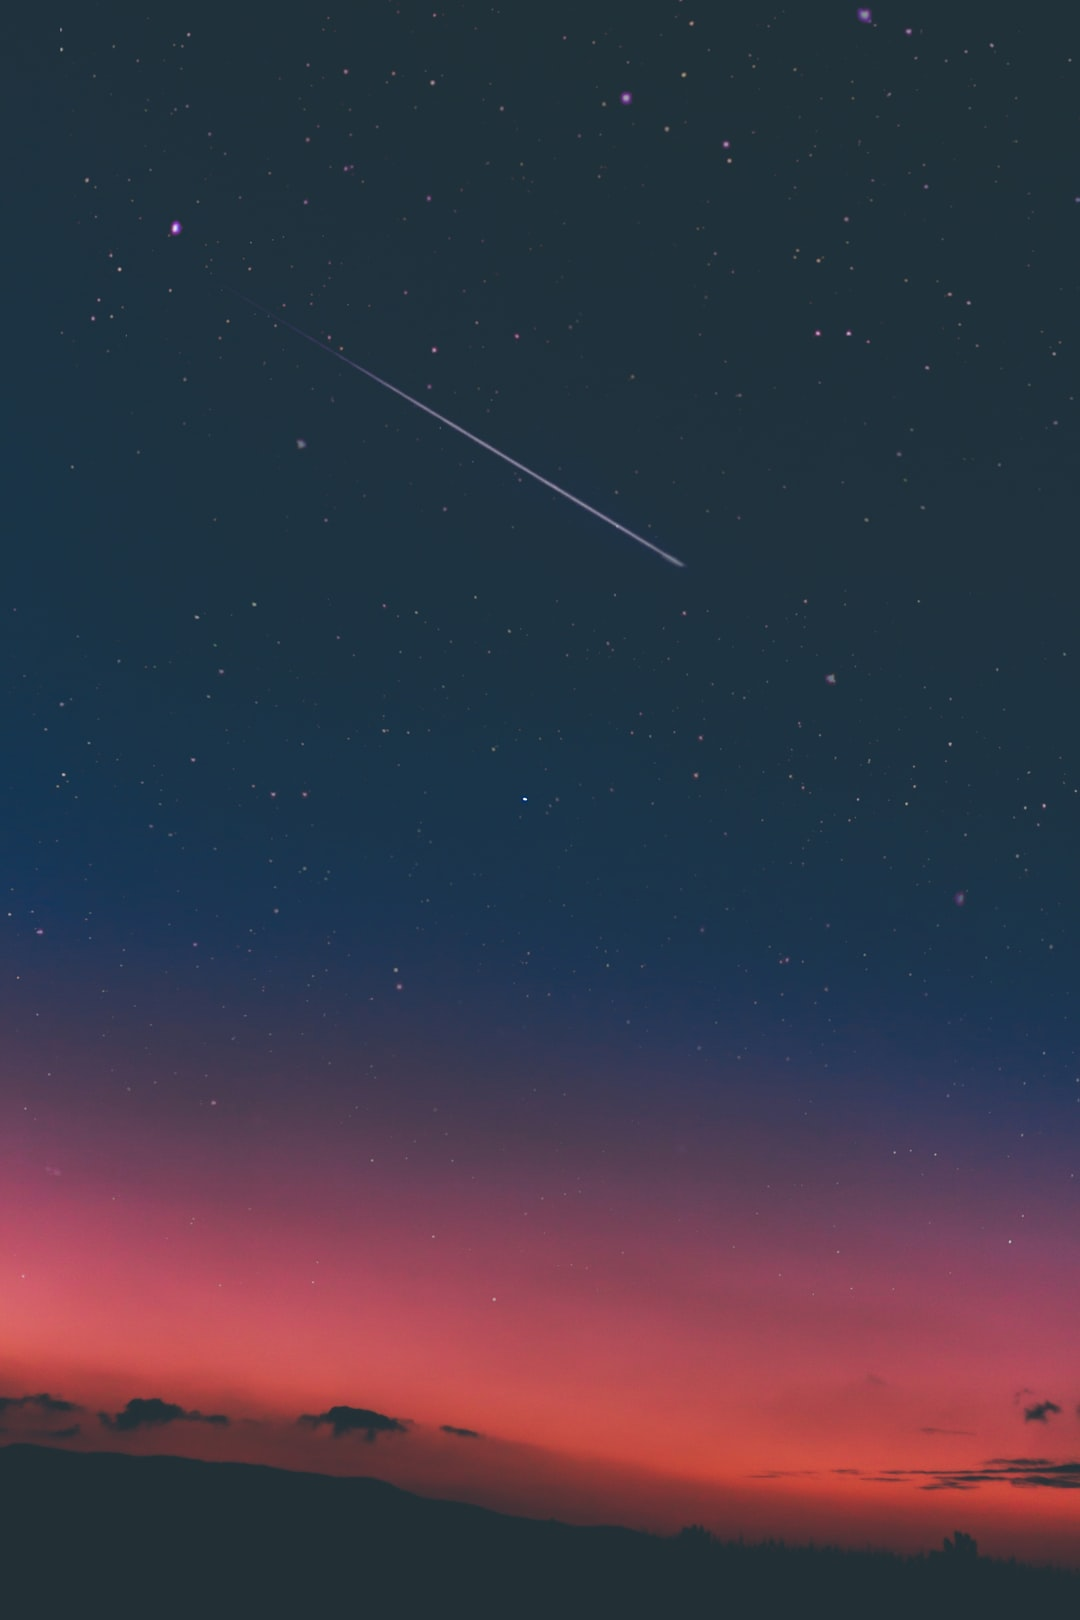 shooting star in night u003cbu003eskyu003c/bu003e photo u2013 Free Nature Image on Unsplash